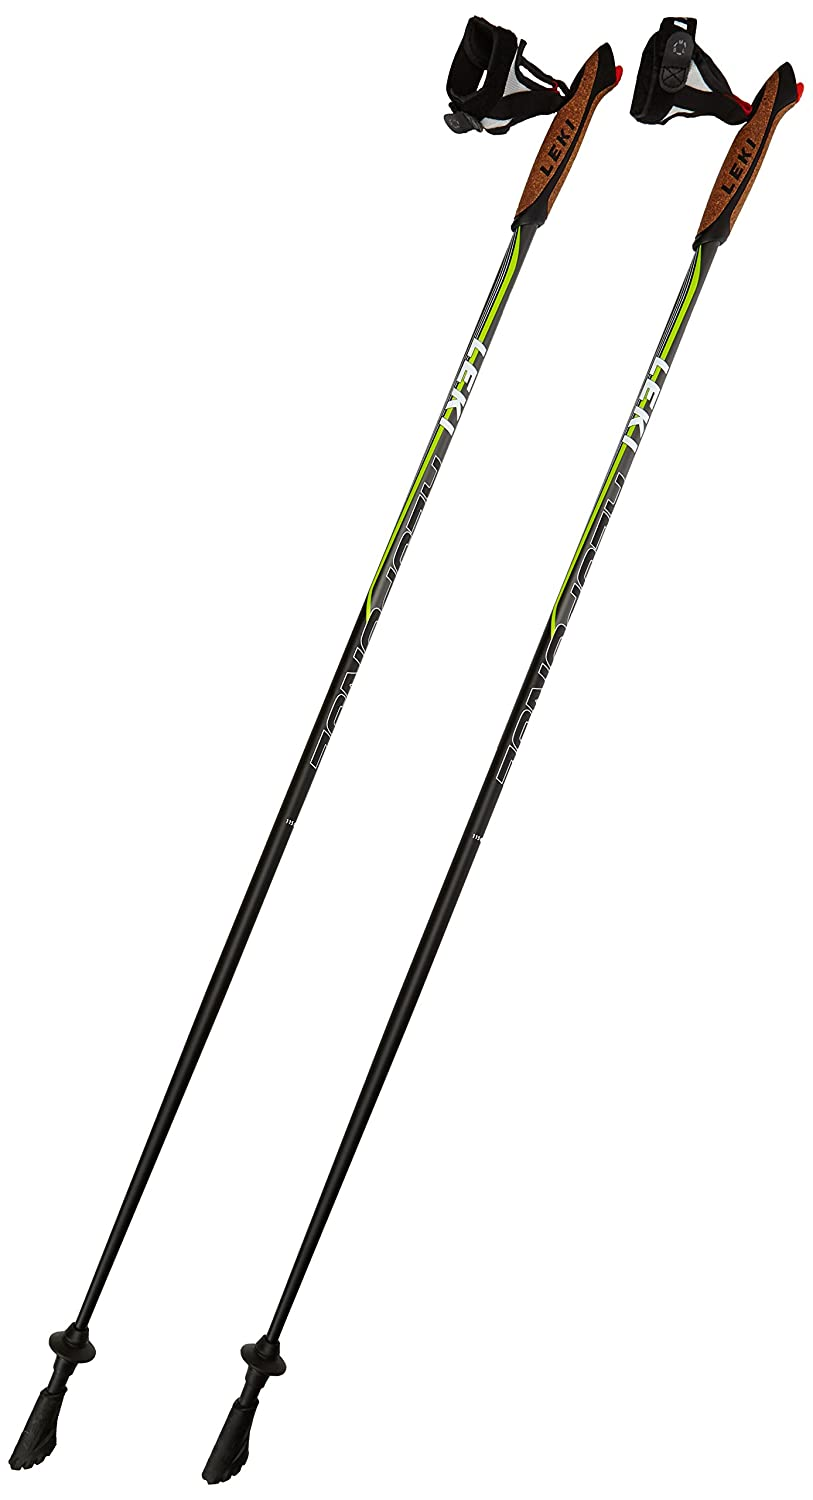 Leki Response St246 Nordic Walking Pole 6372520